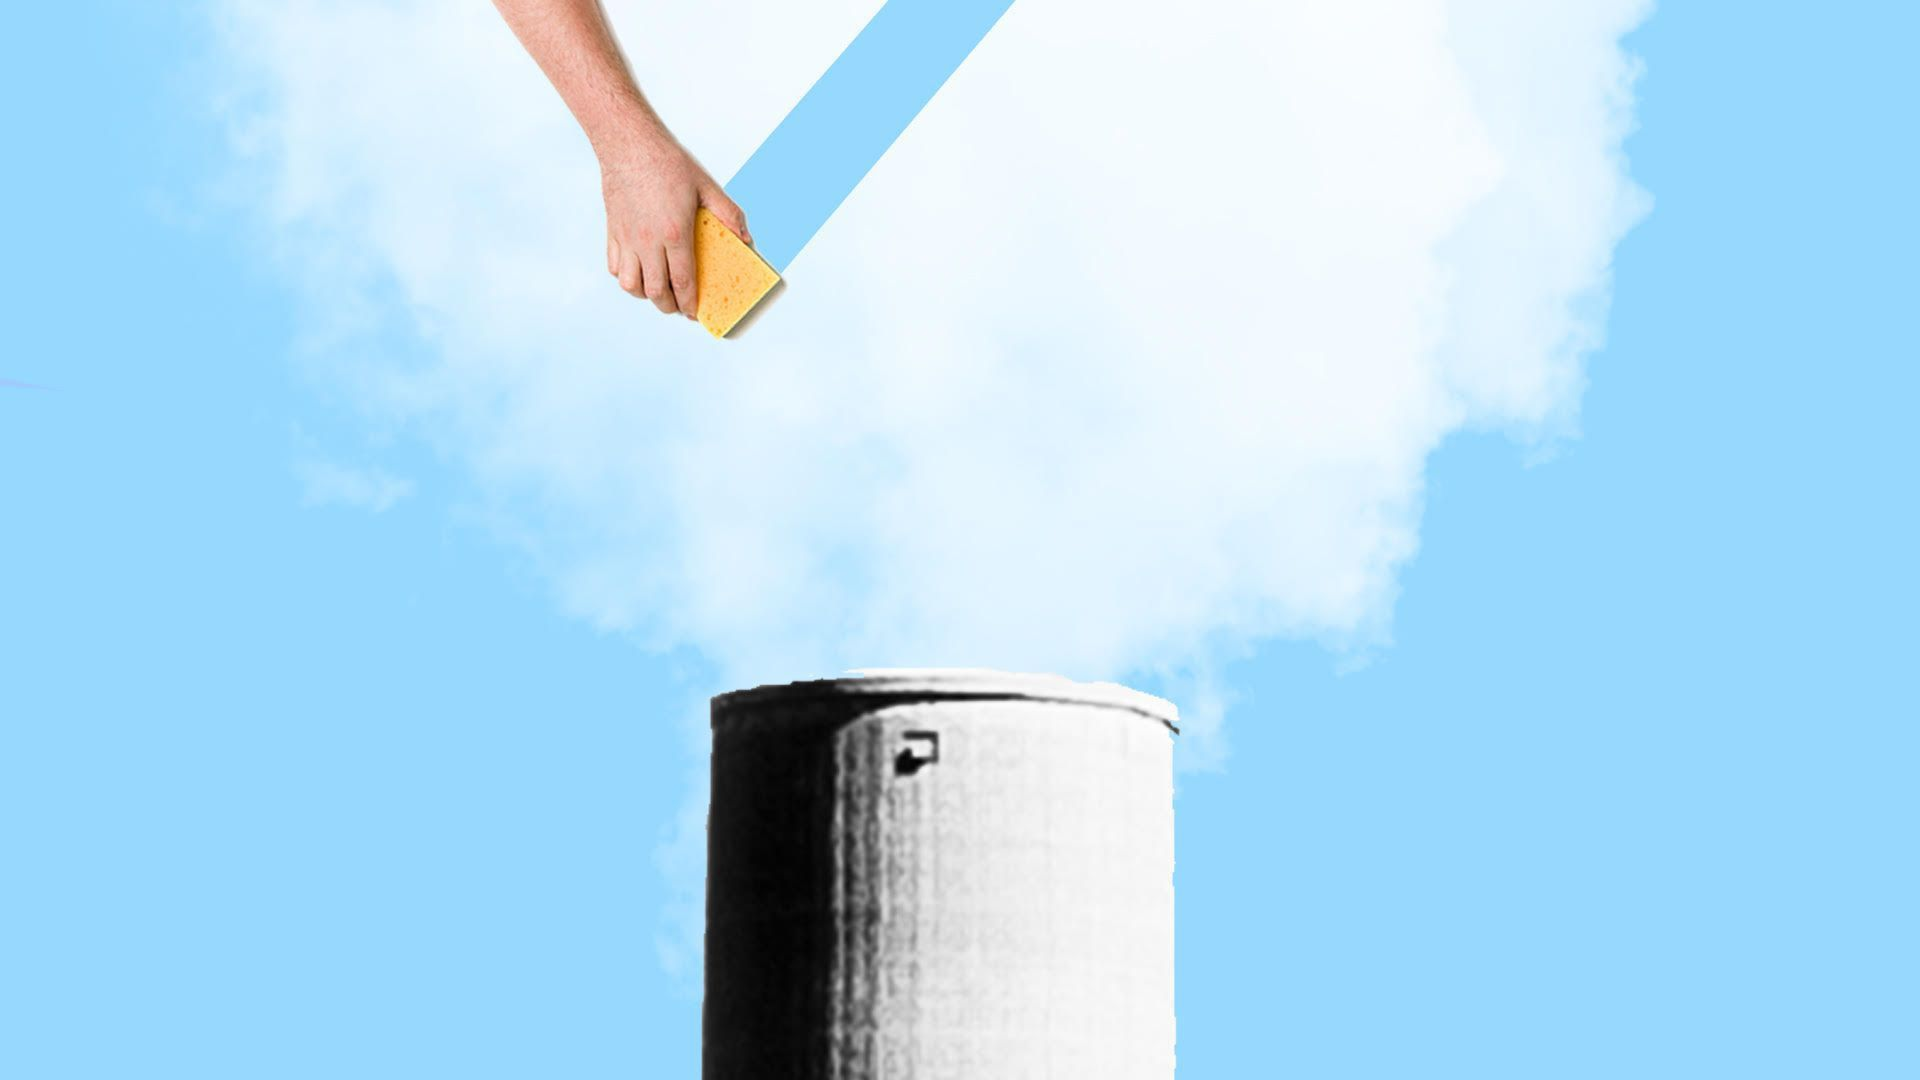 illustration of a smokestack's smoke erased away by a sponge